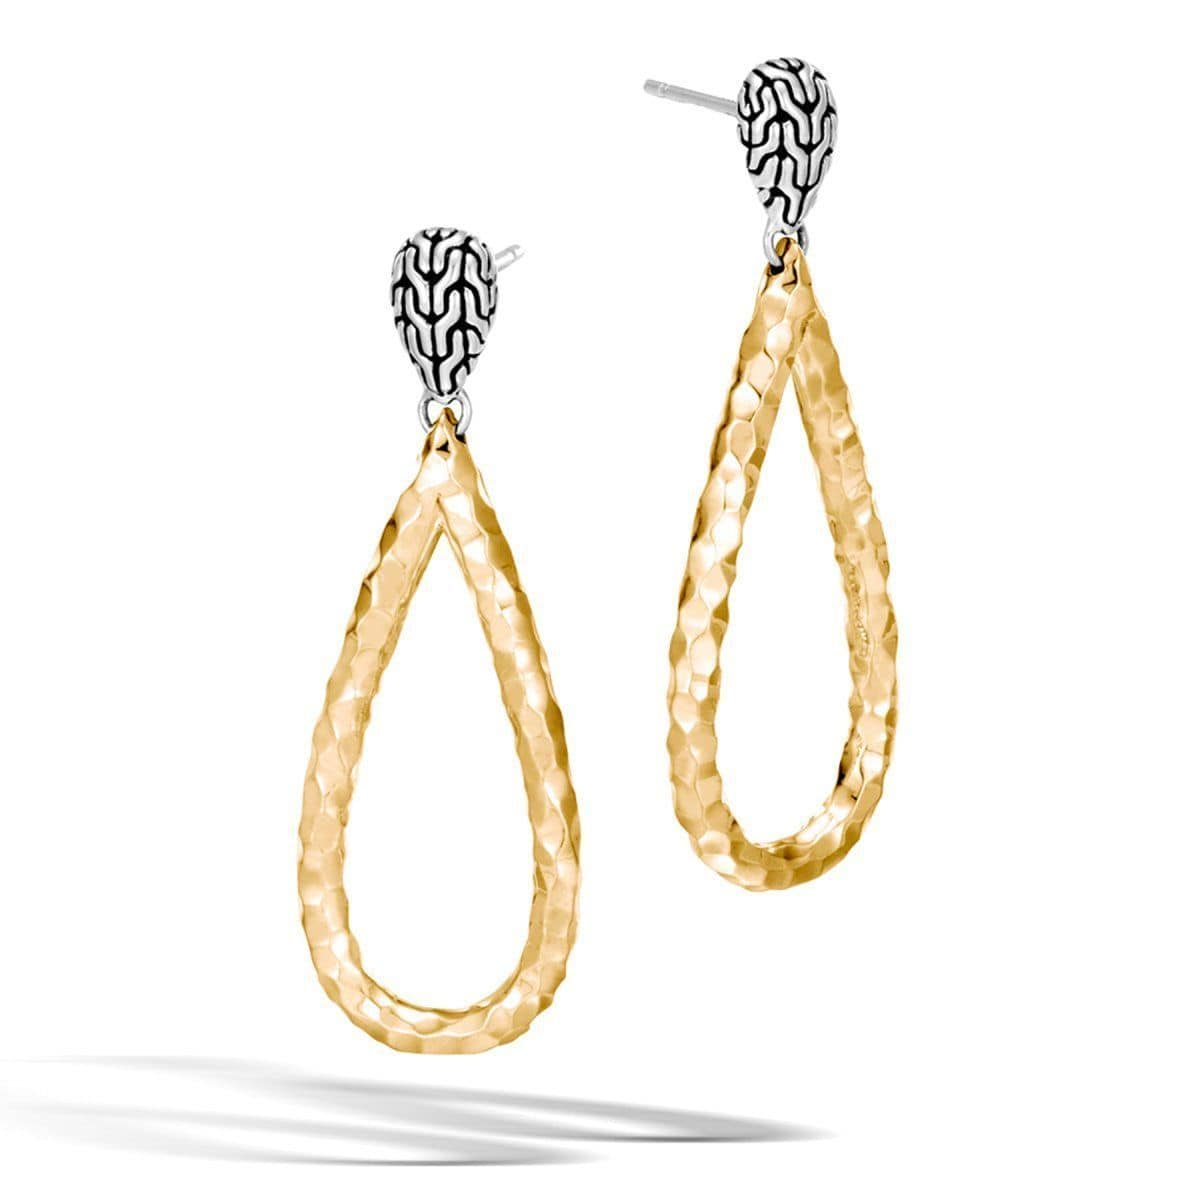 Classic Chain Silver & 18K Gold Earrings - EZ999582-John Hardy-Renee Taylor Gallery